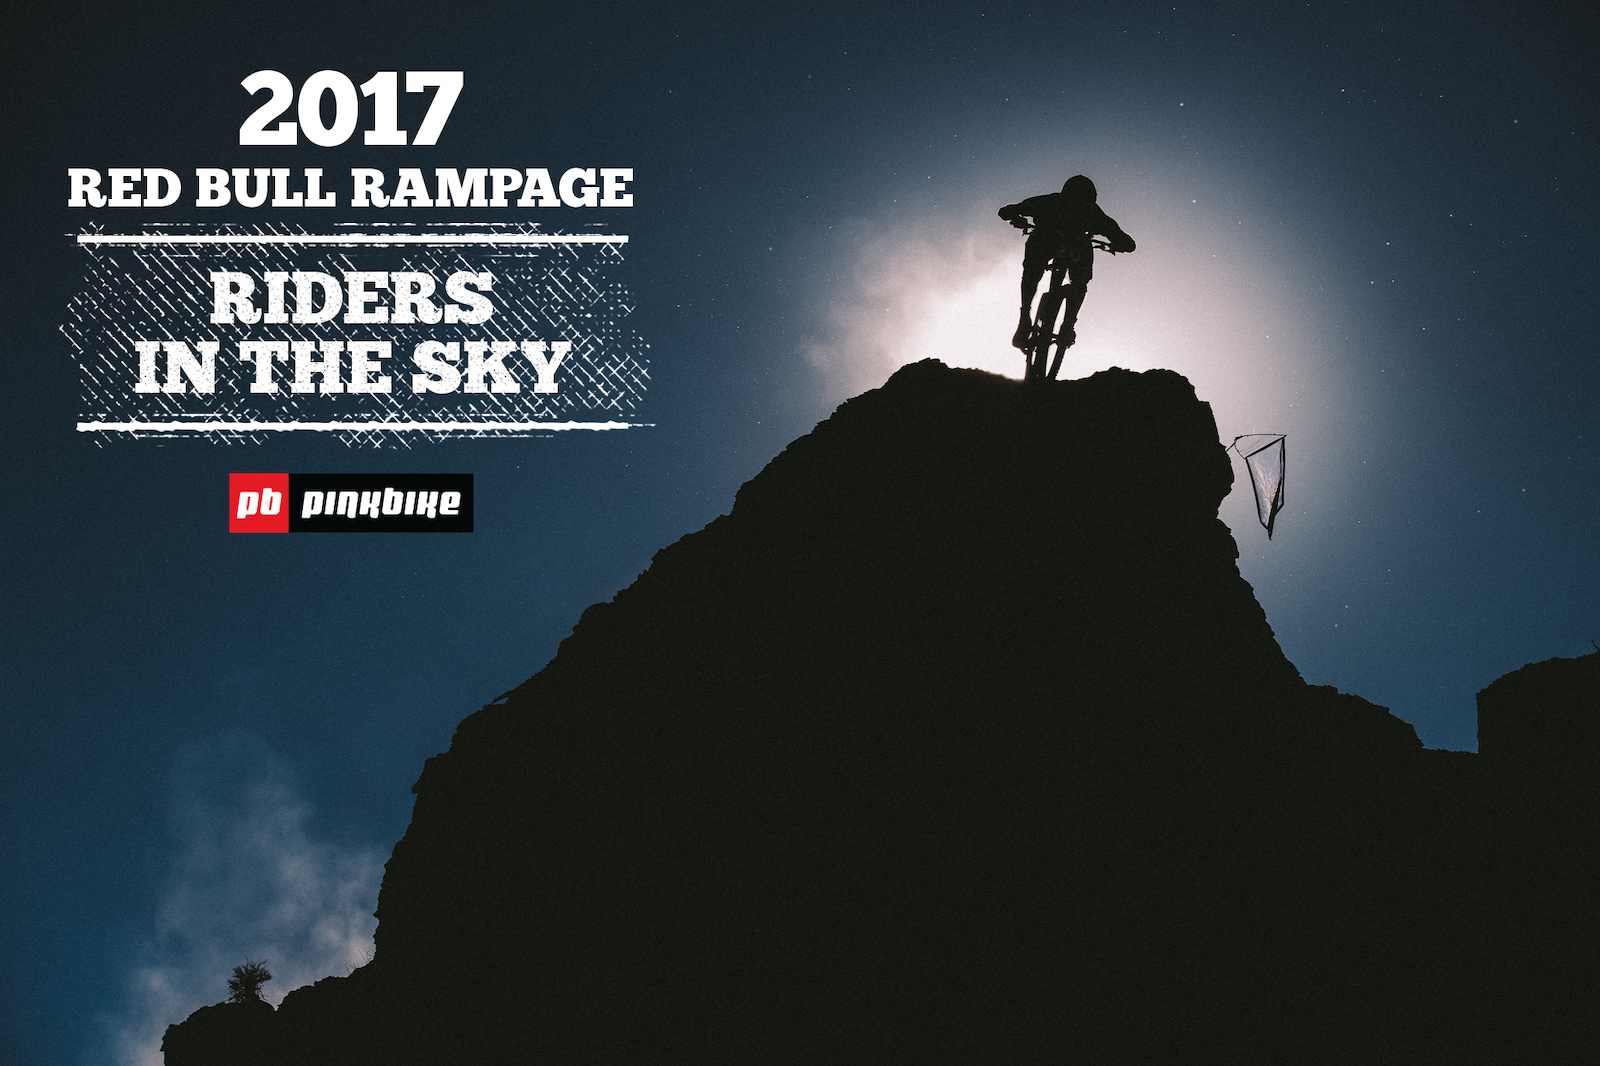 2017 Red Bull Rampage